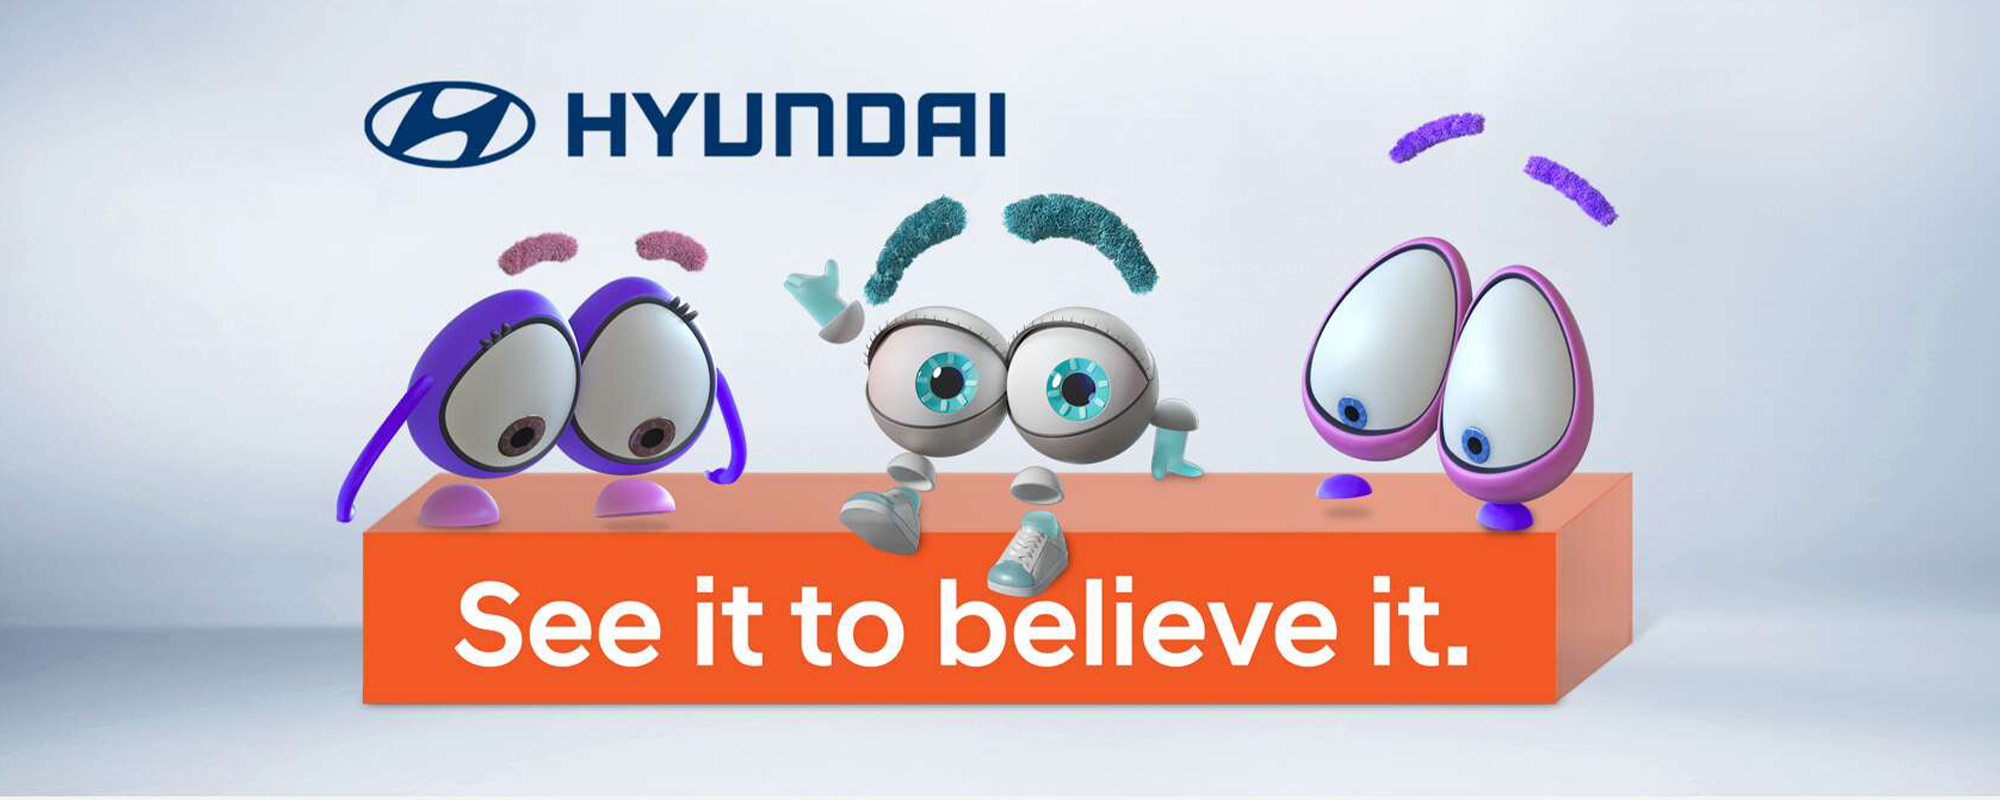 Hyundai. See it to believe it.